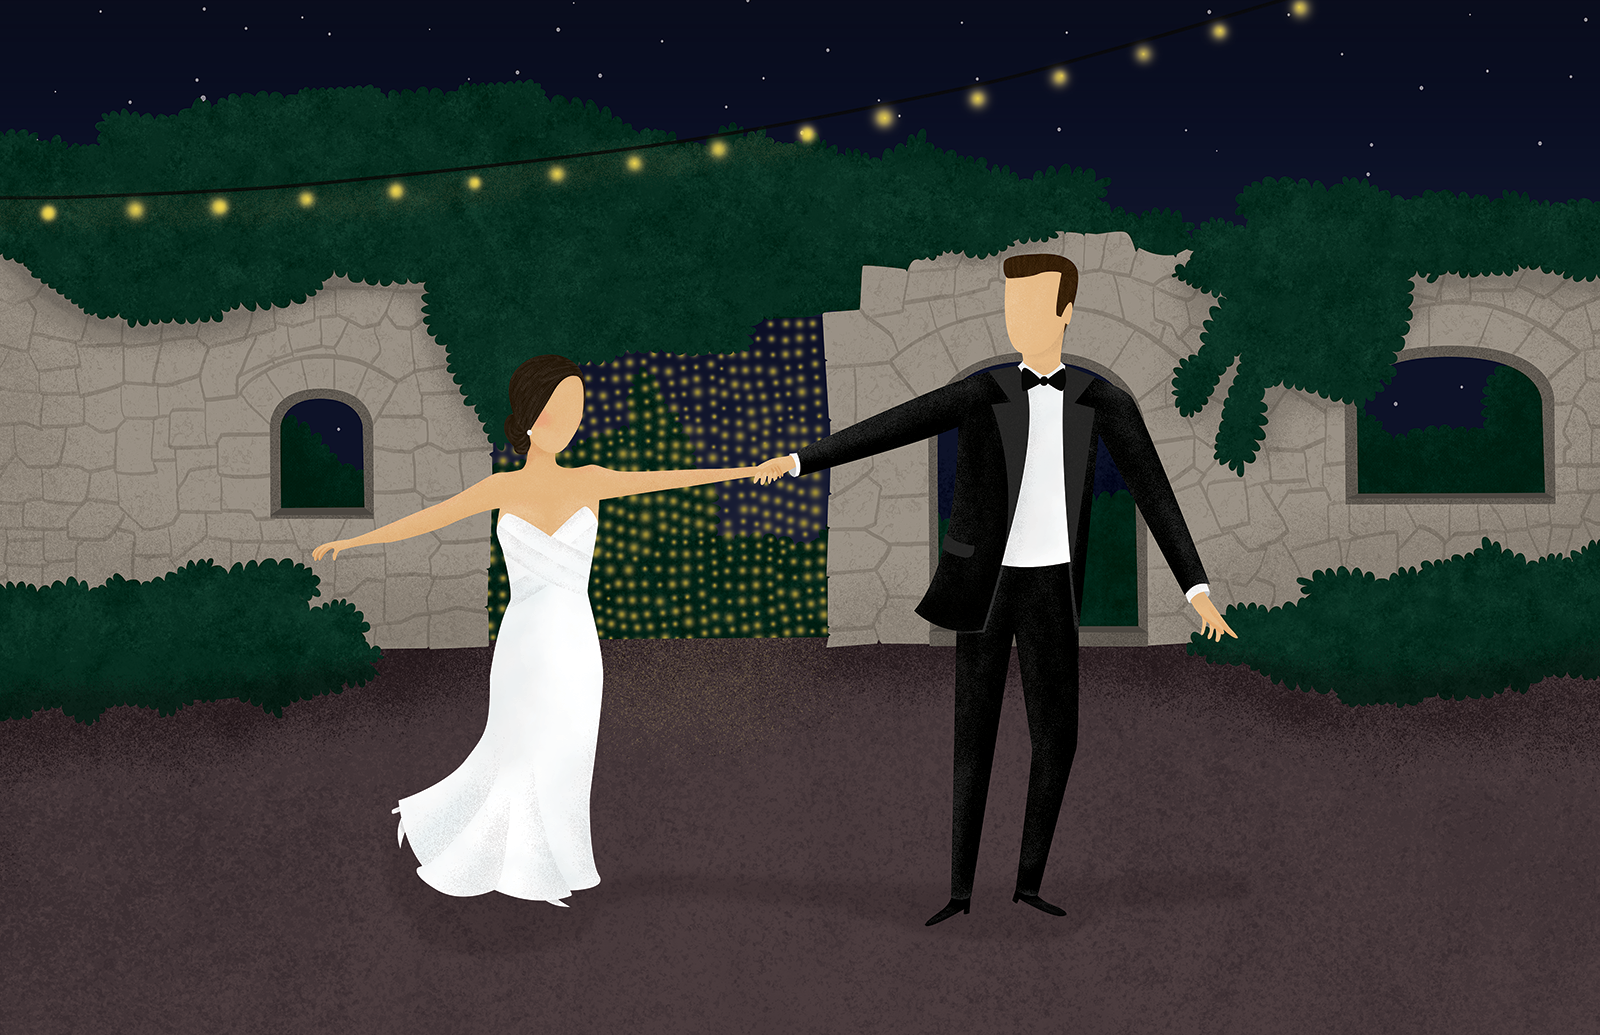 natalie-marion-wedding-portrait-dancing-night-illustration.png